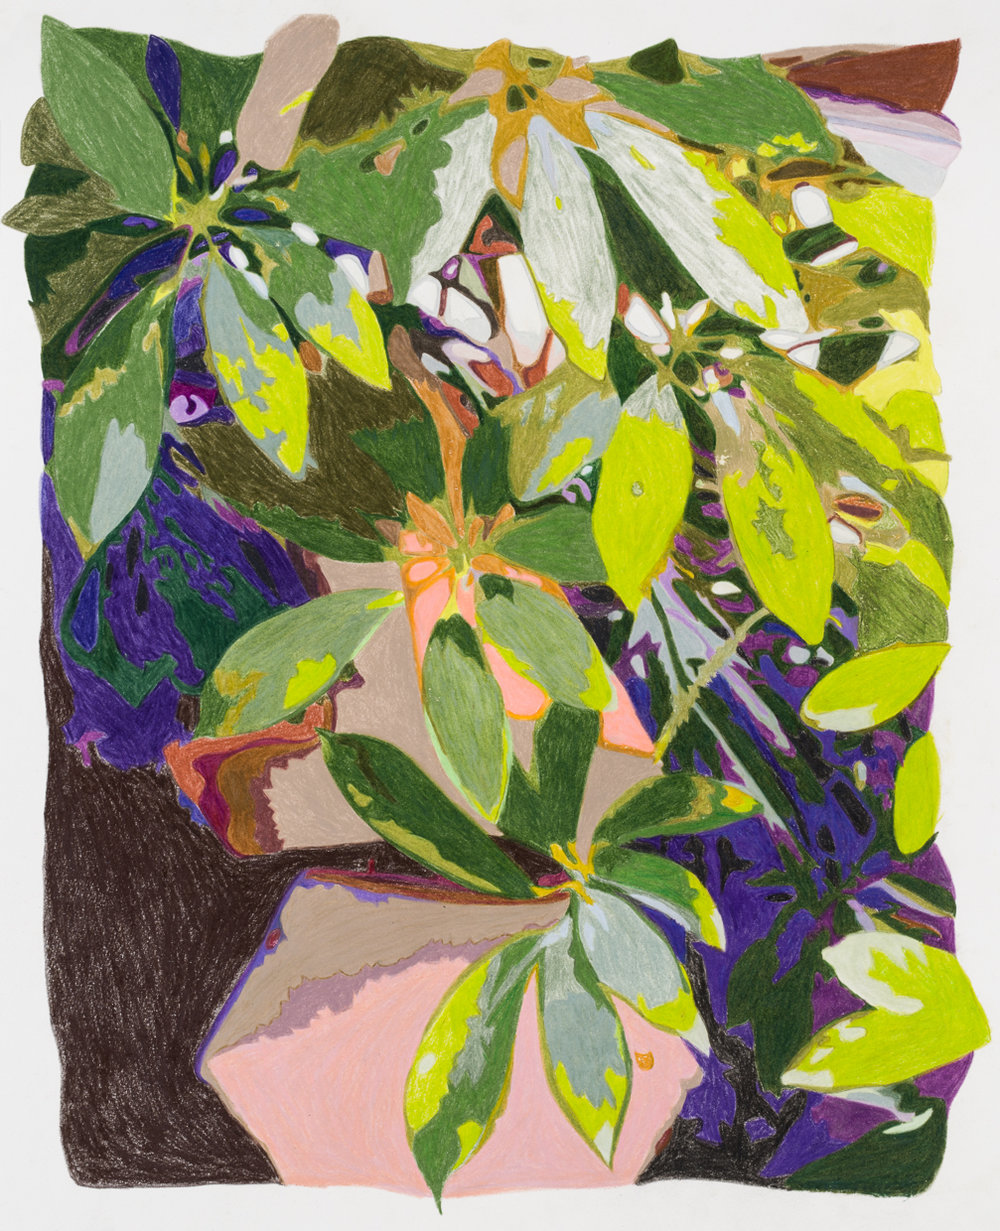 Umbrella plant, Taliesin West , colored pencil on paper, 15 x 10 inches, 2018.  Photography by    Paul Takeuchi